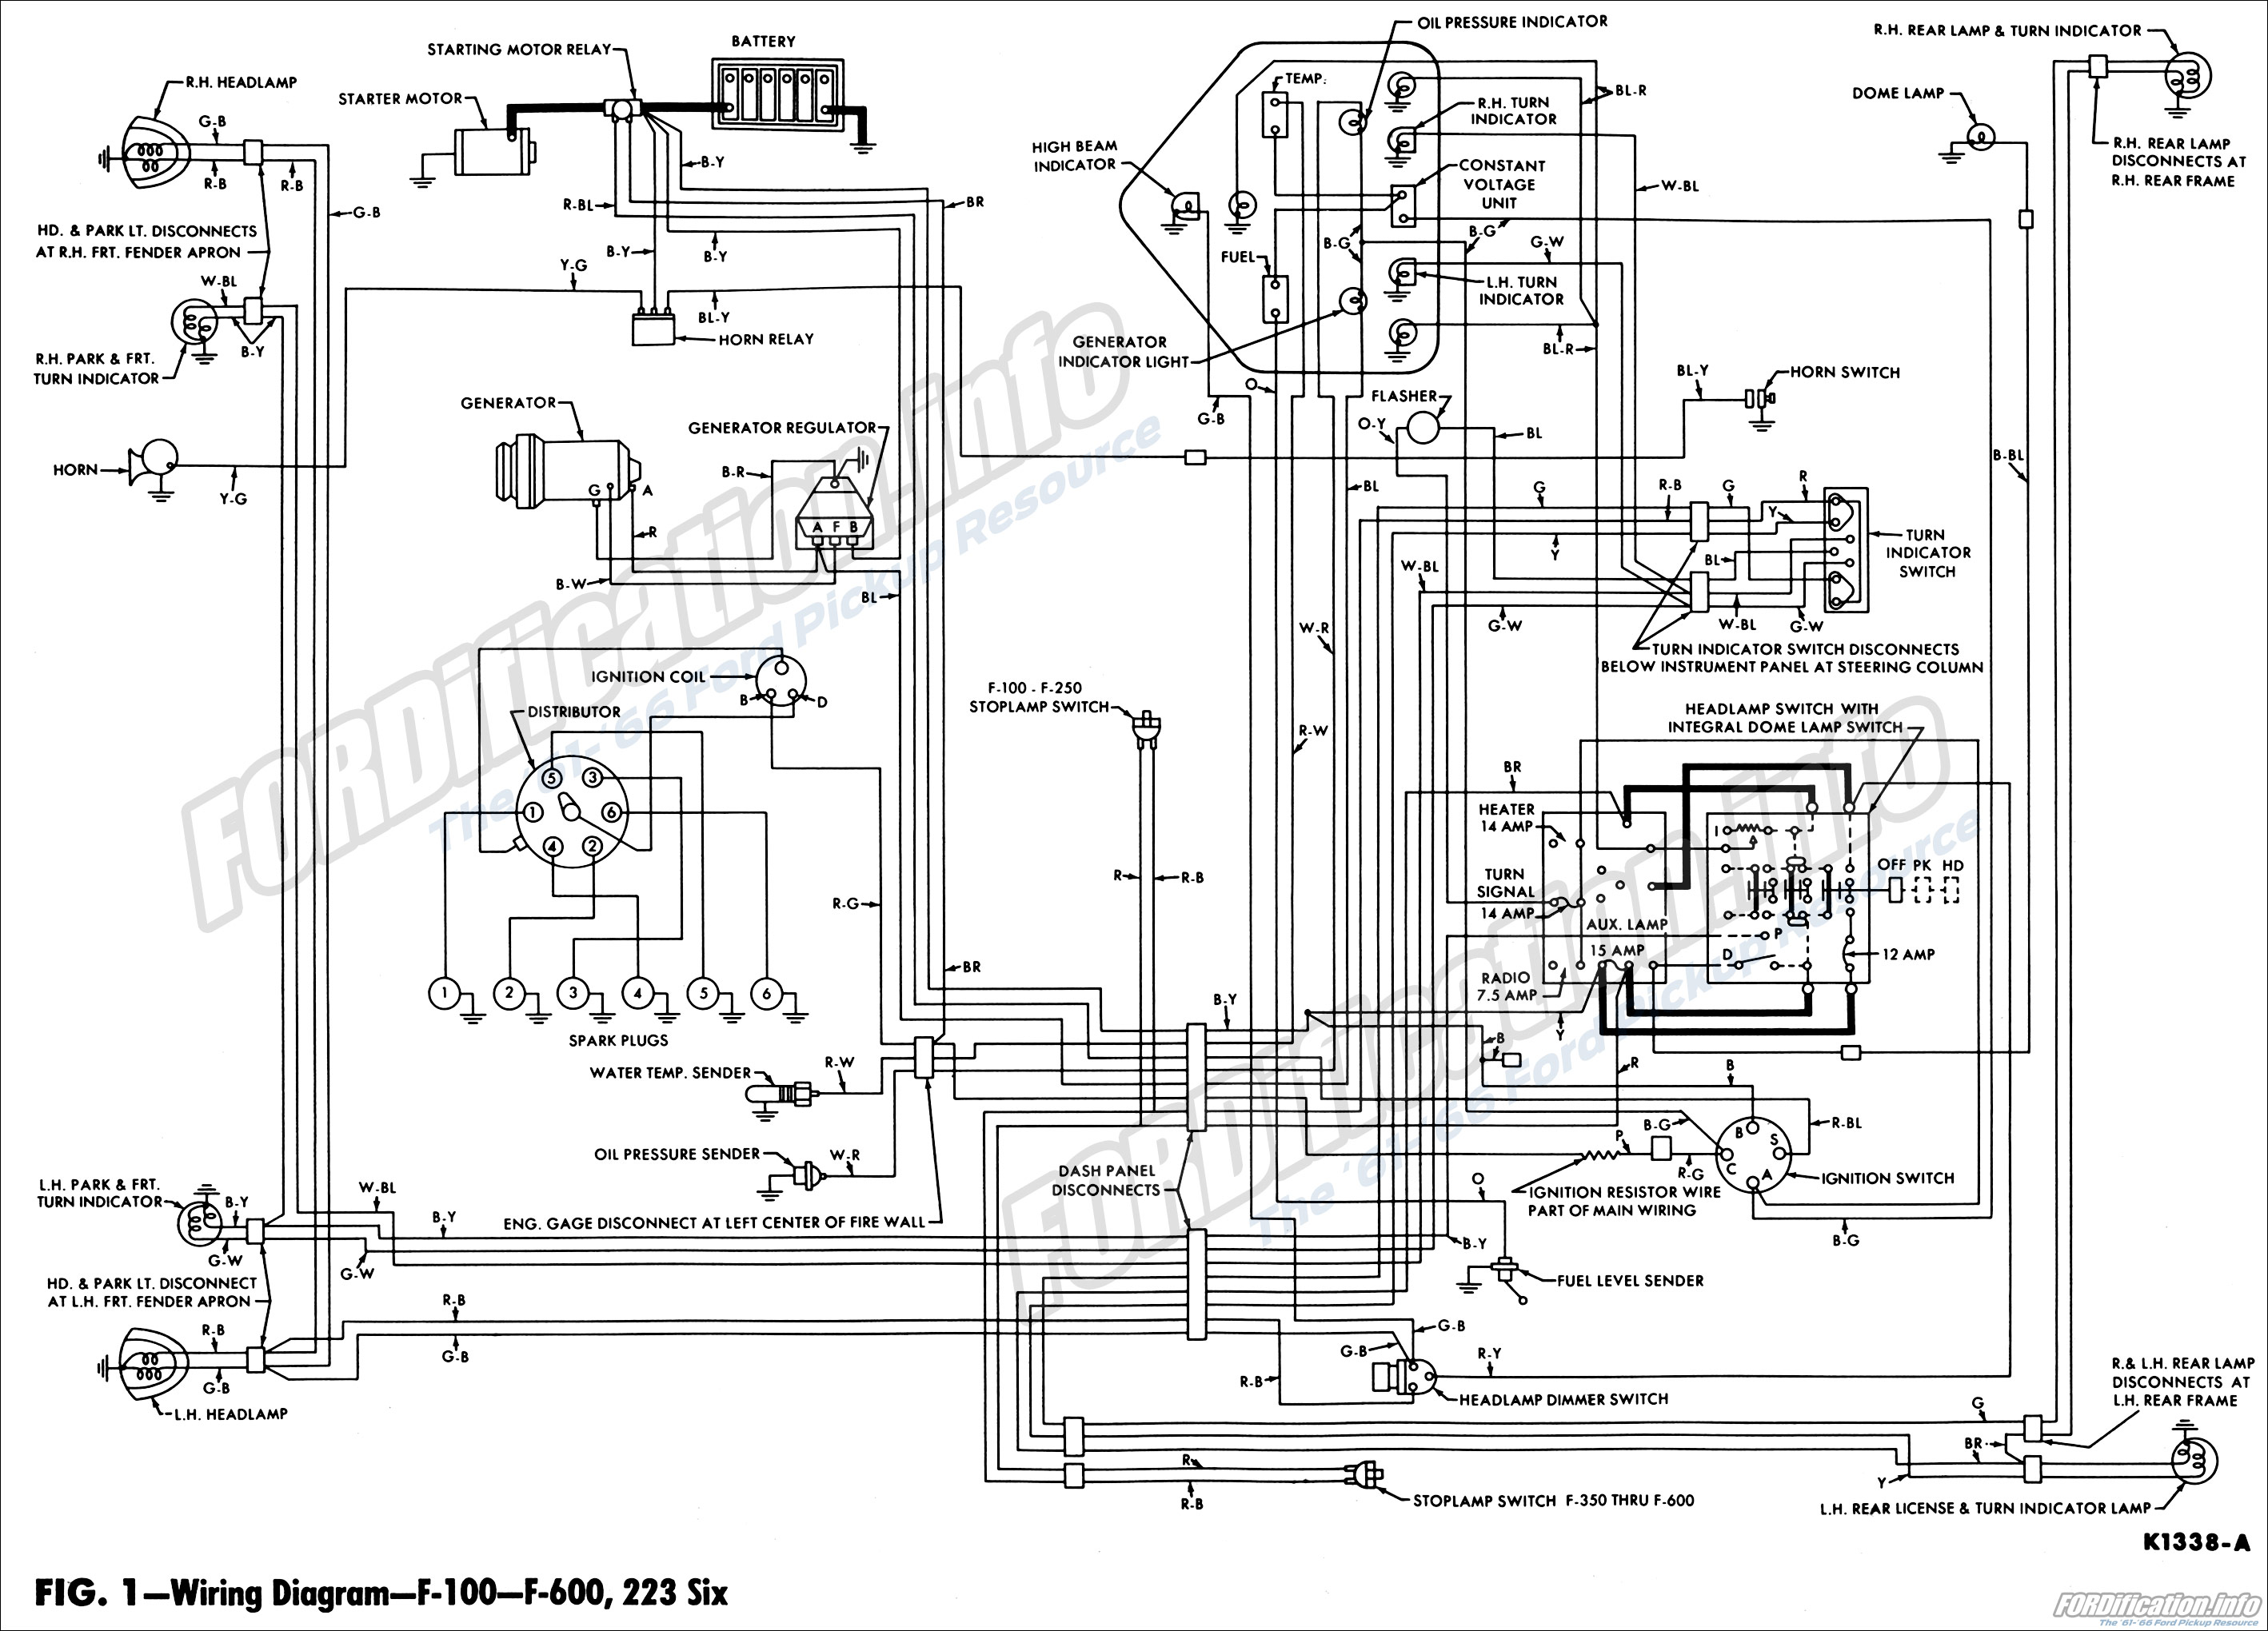 1961 Ford Wiring Diagram : 24 Wiring Diagram Images